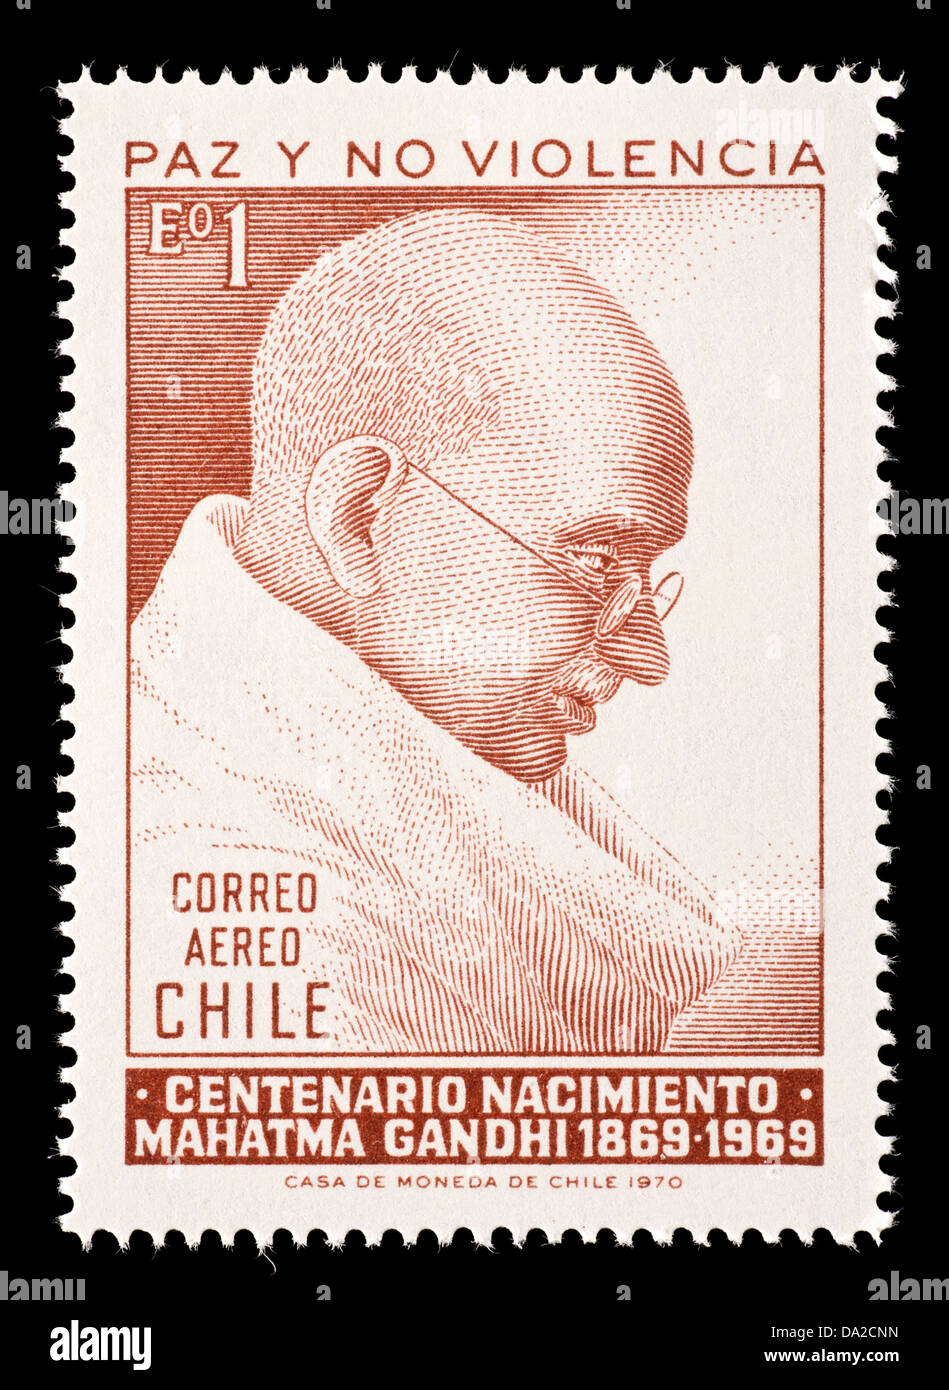 Postage Stamp From Chile Depicting Mahatma Gandhi